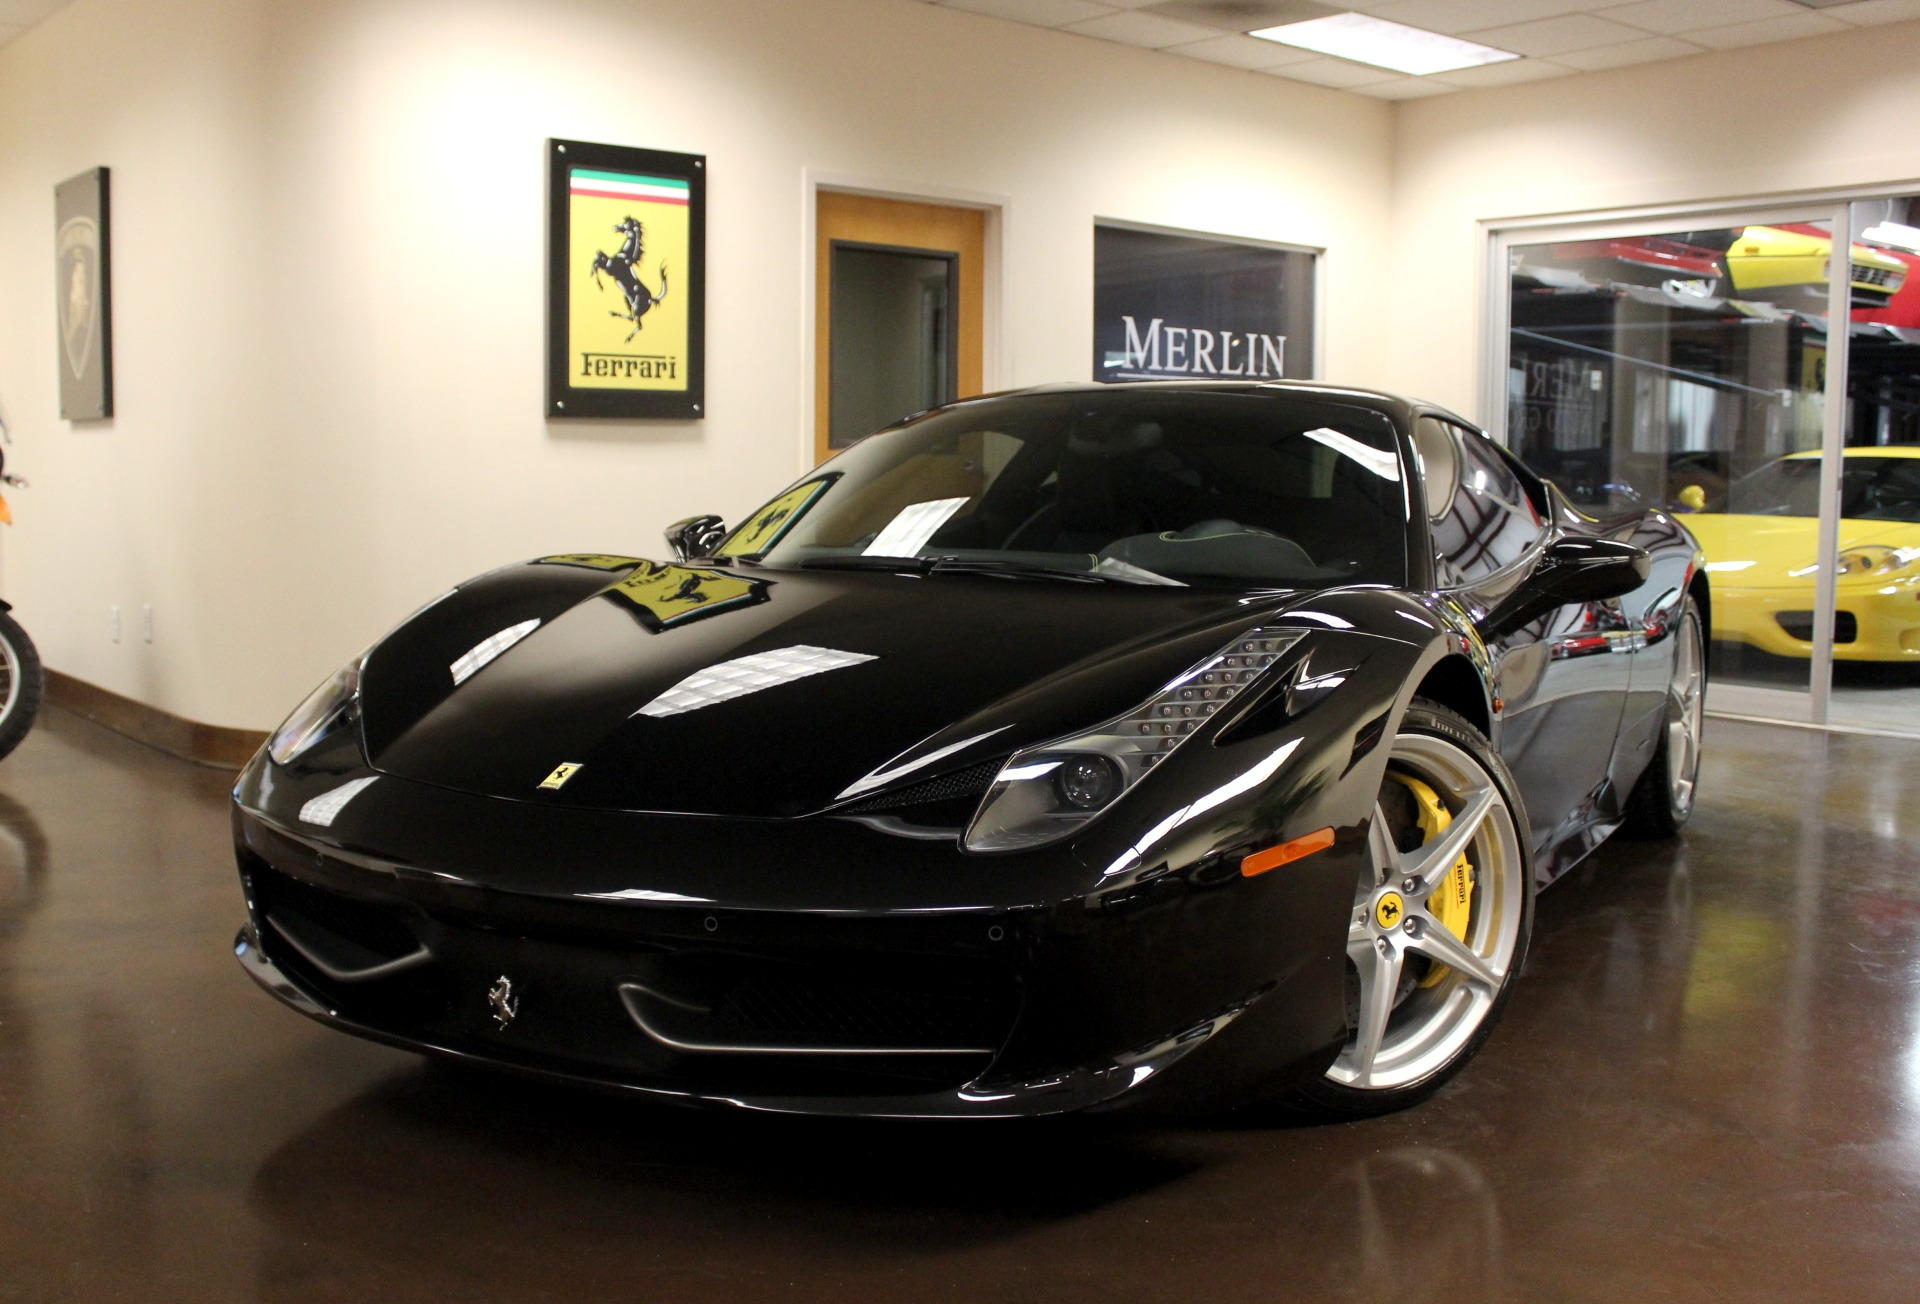 used three rating speciale front motor reviews a quarter trend cars and ferrari